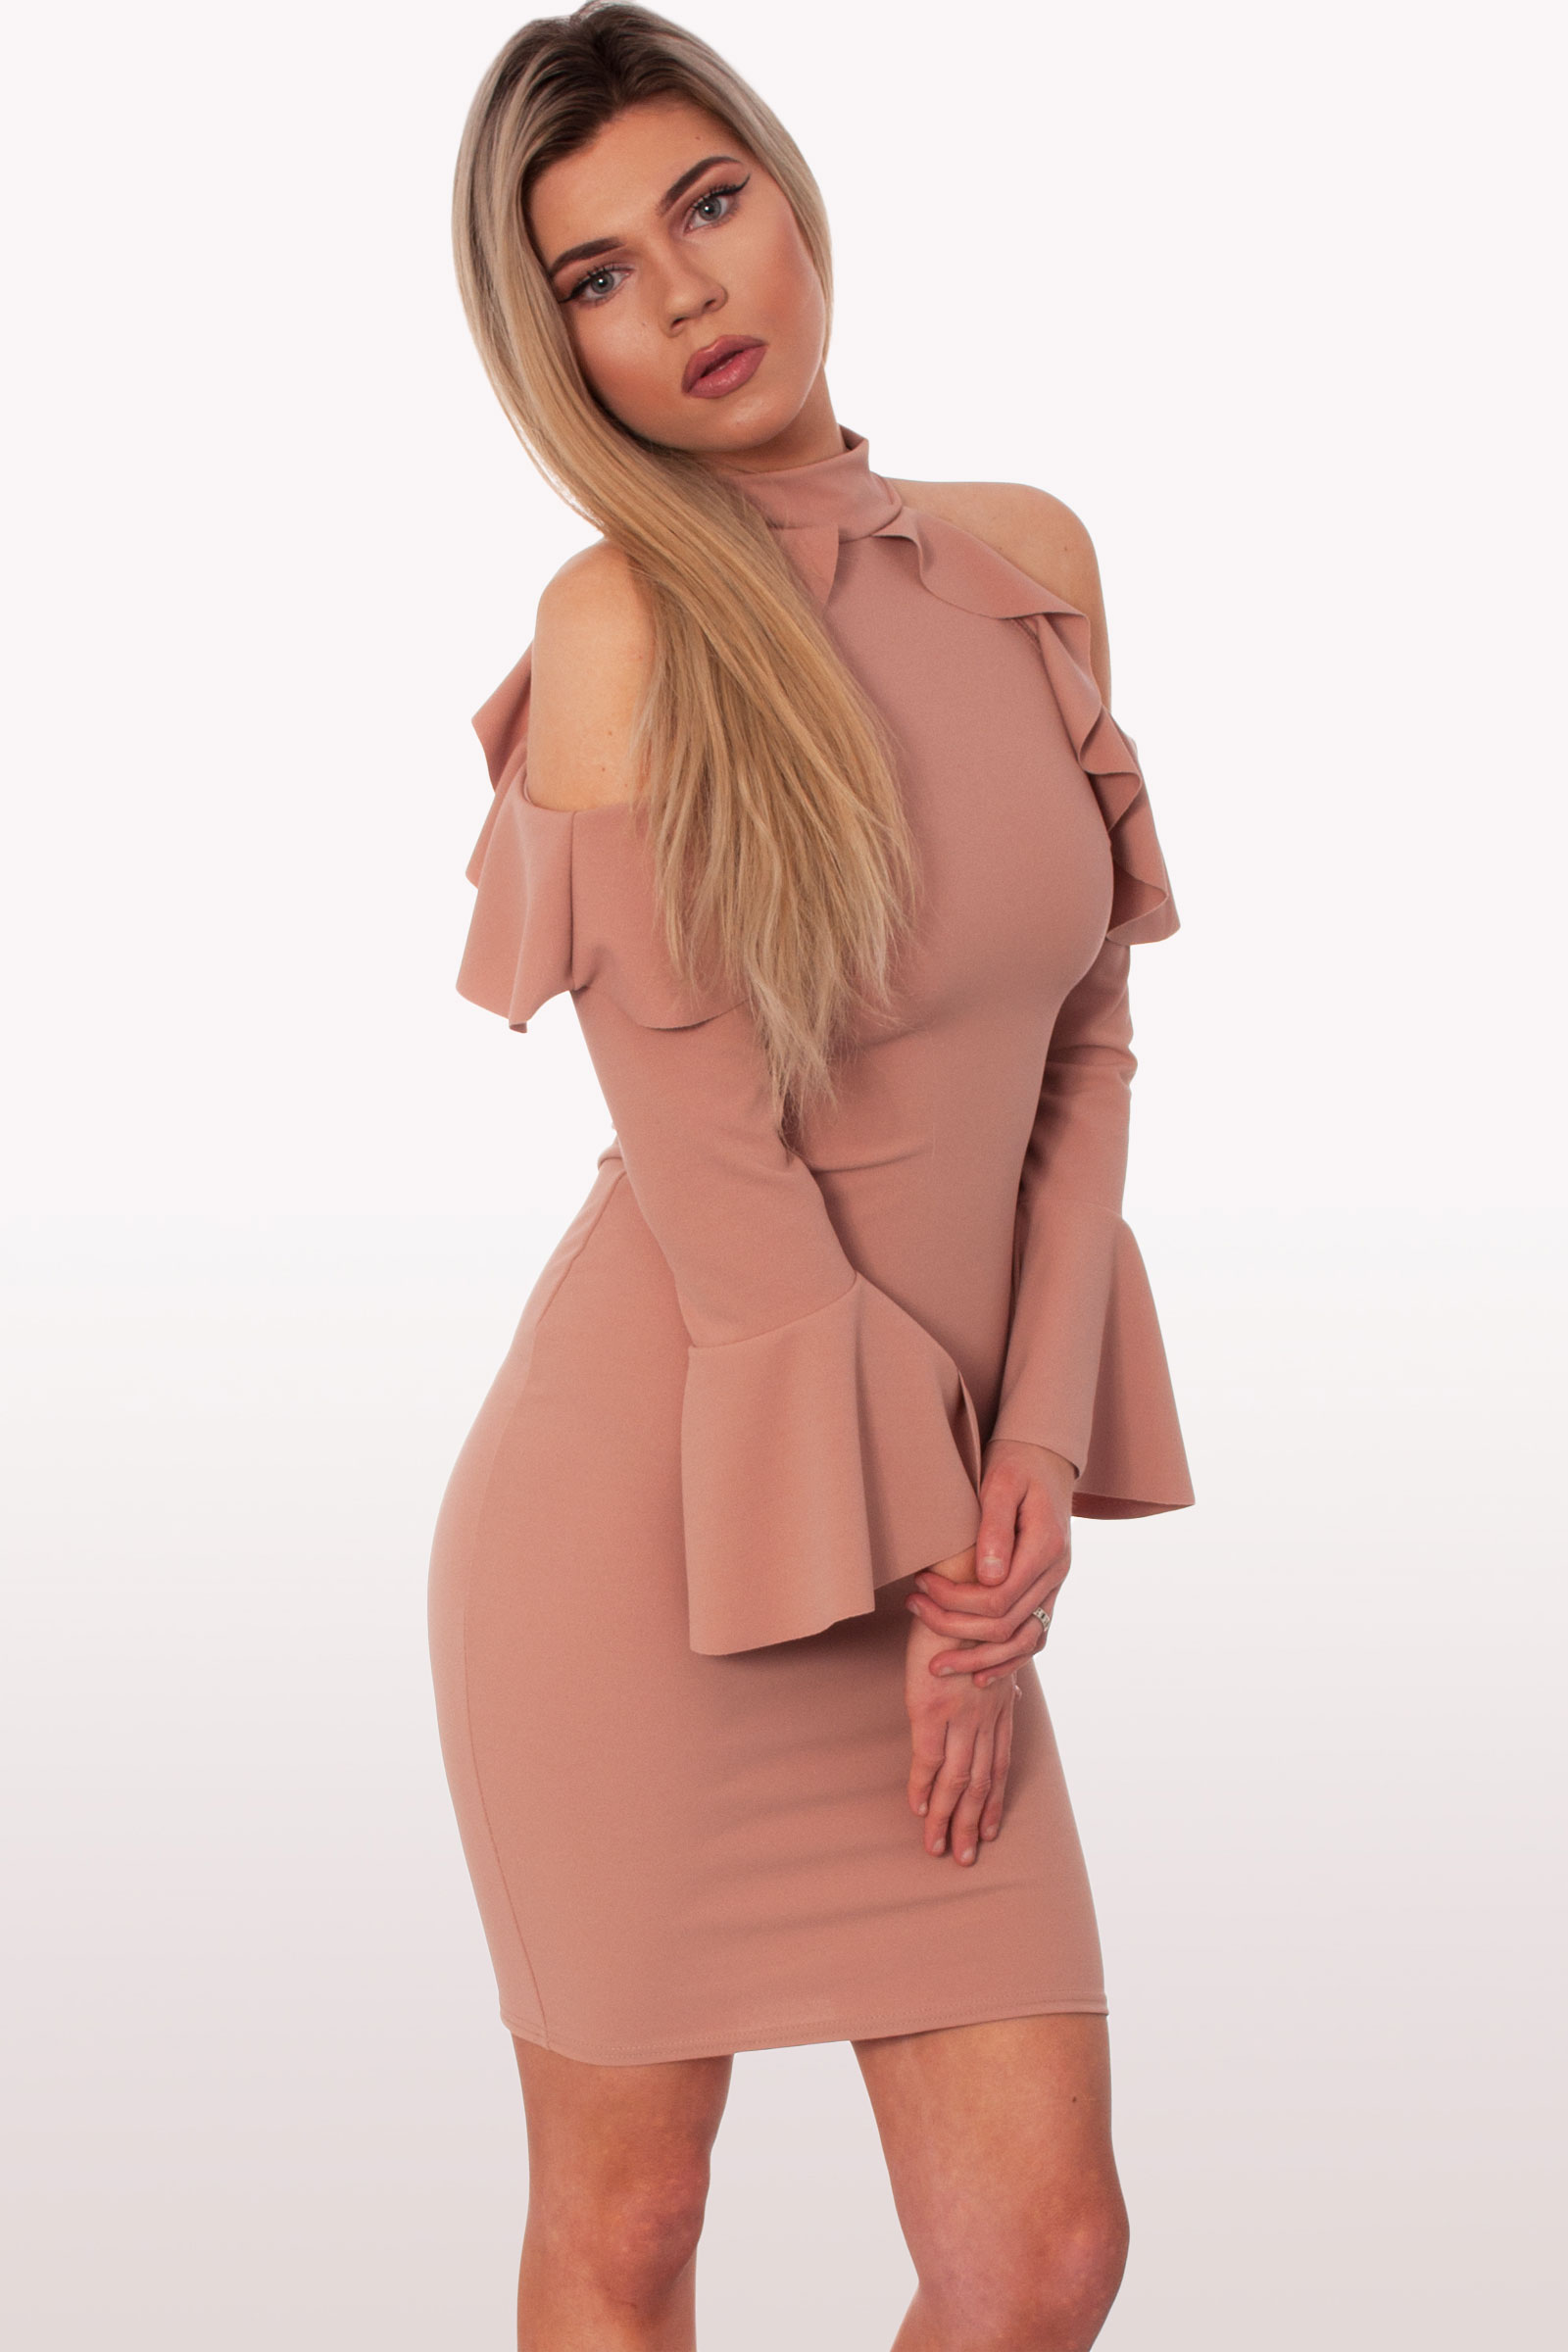 d84b7cbfeb4e Blush Frill Bodycon Dress